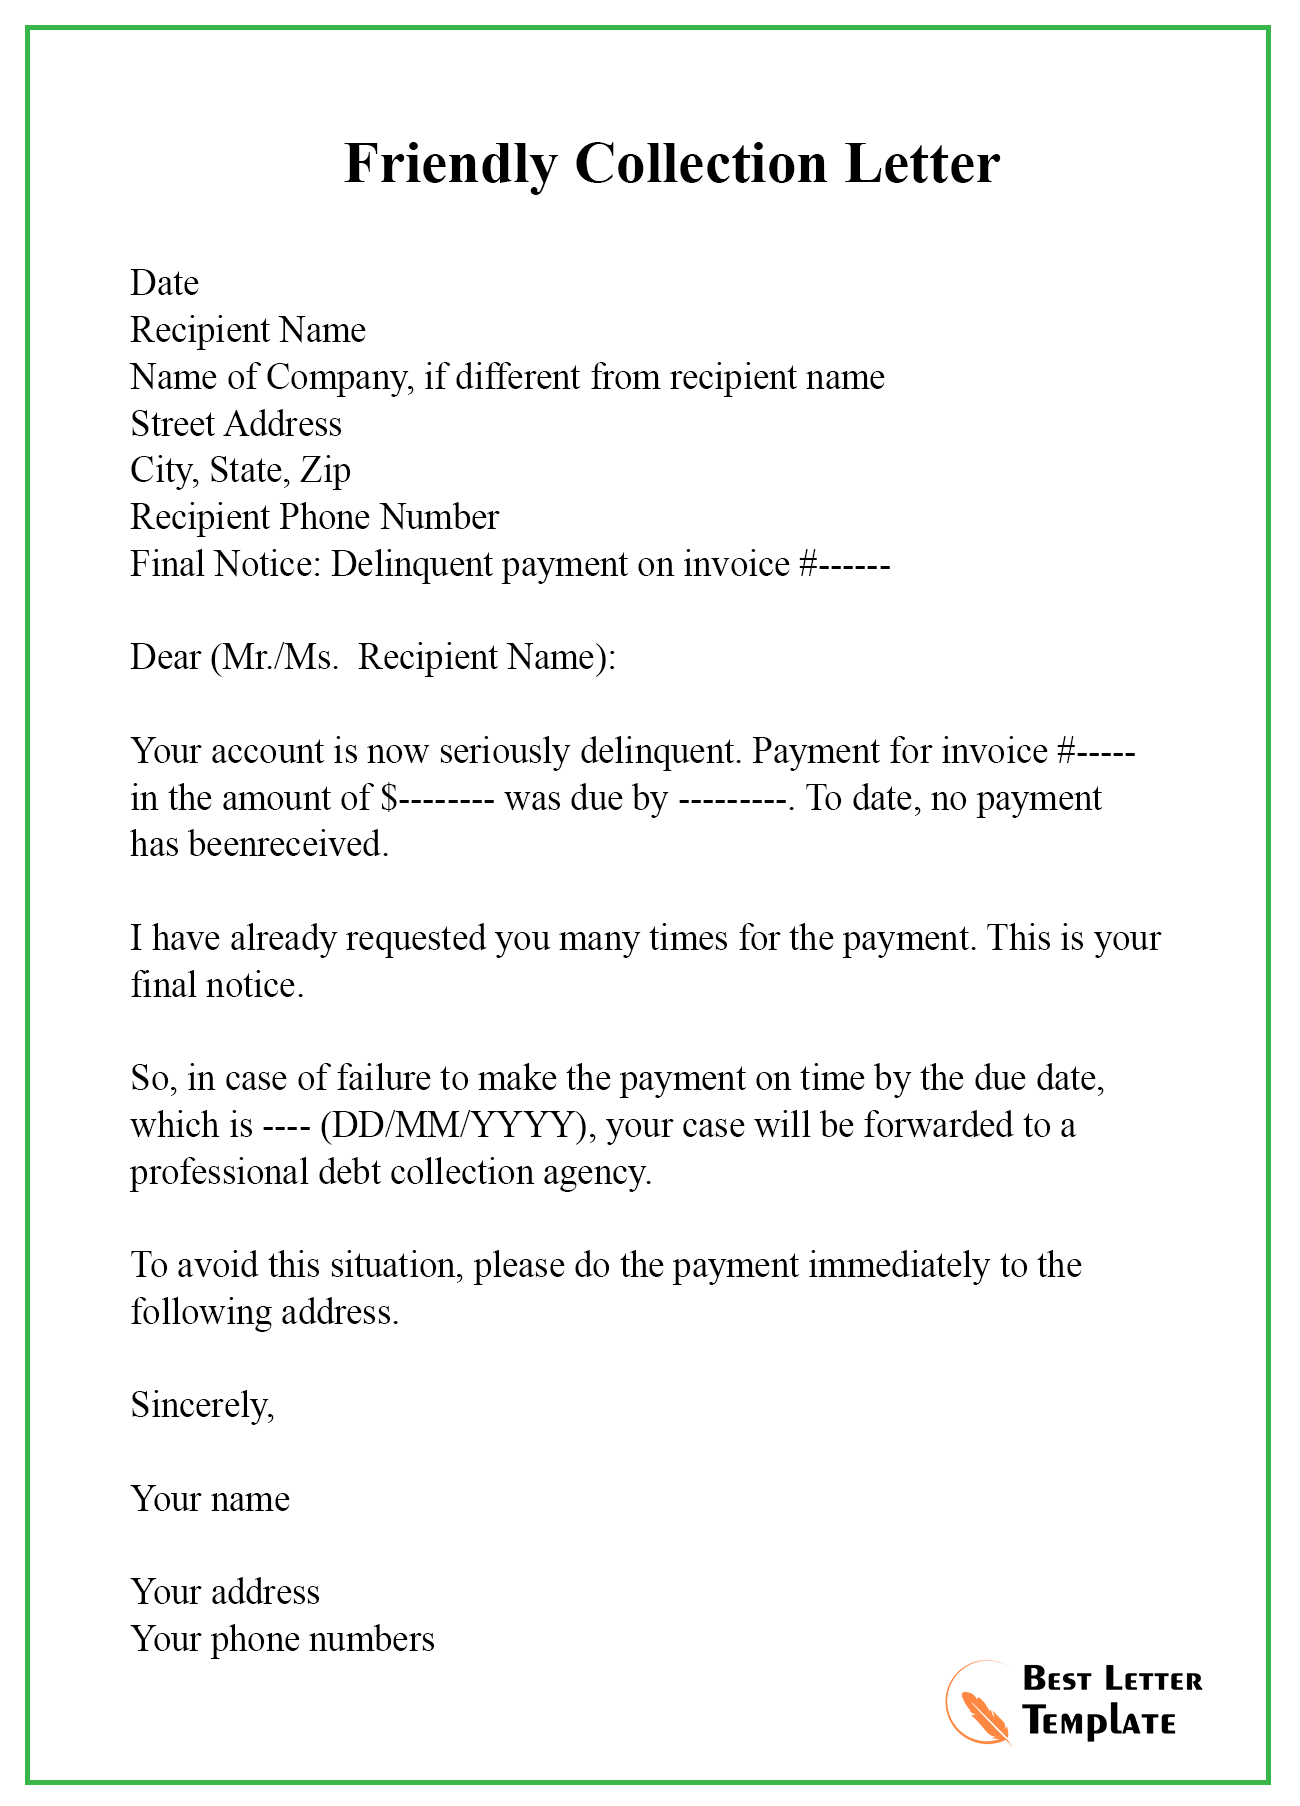 Collection Letter Template   Letter